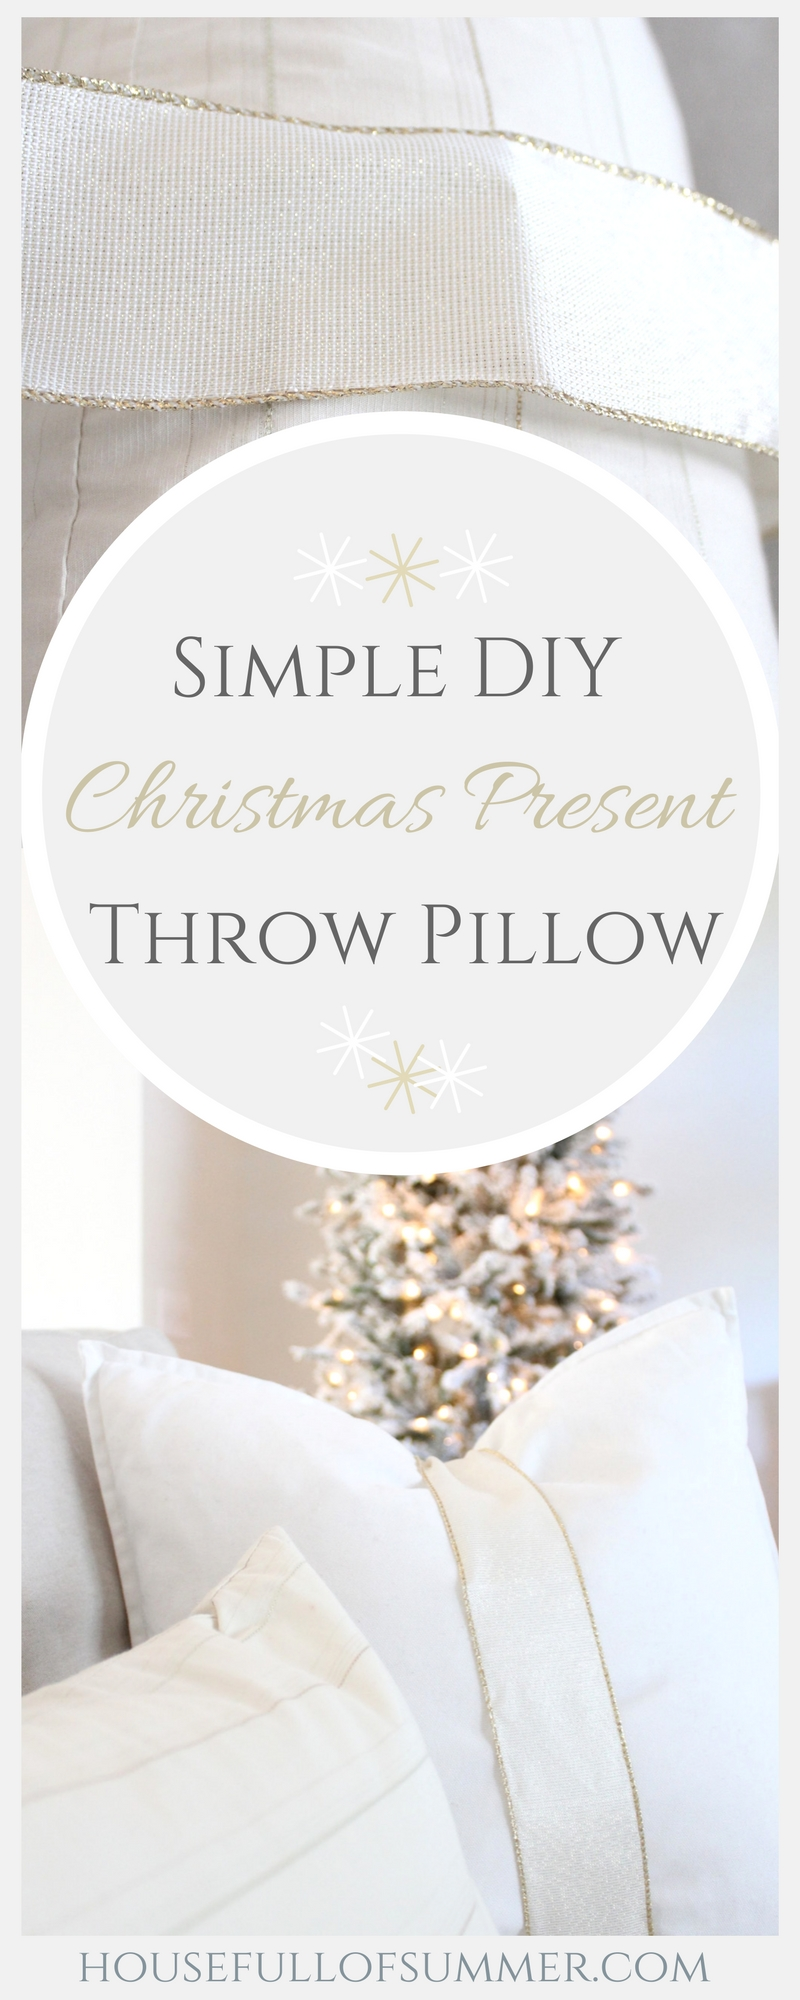 Simple DIY Christmas Present Throw Pillow | House Full of Summer blog - holidays, christmas decor ideas, coastal christmas, white christmas decor, glam christmas, gold and white christmas decor, ribbon, coastal chic christmas, quick and easy decorating tips, silver and gold